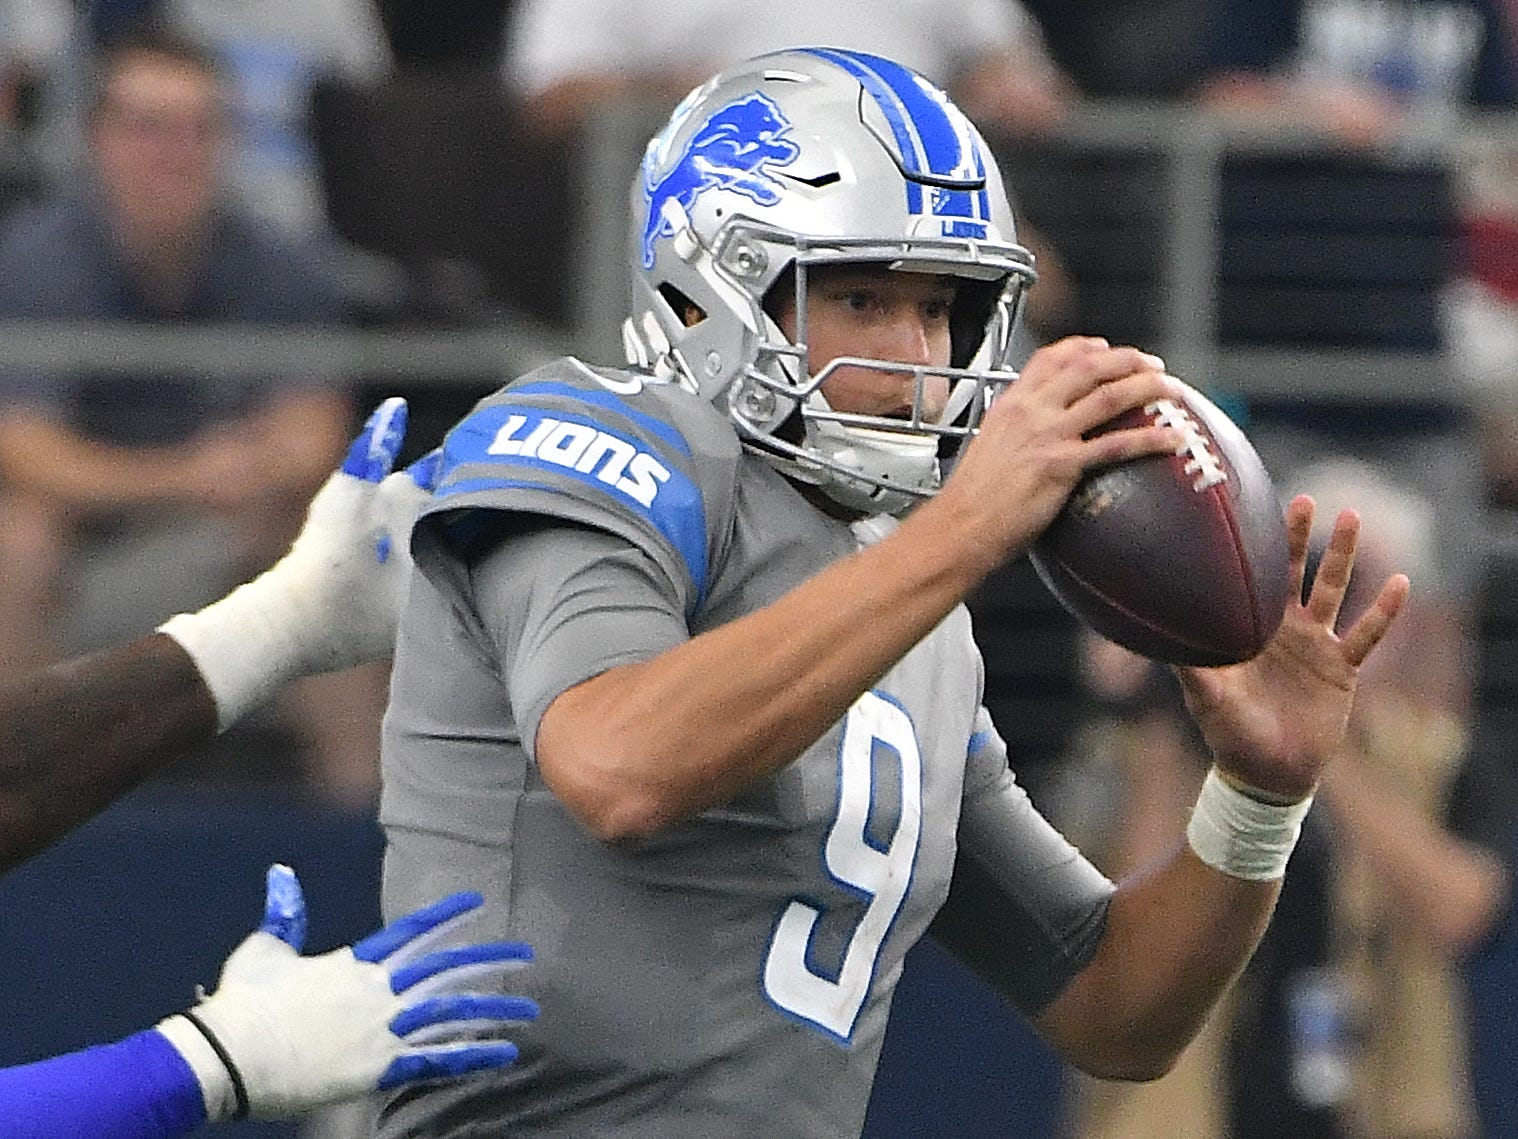 QB Matthew Stafford: It's been a fairly standard season for Stafford, outside the season-opener, where he imploded, throwing four interceptions. There have been a couple other costly ball security moments, including a fumble in San Francisco and the silly pitch against the Vikings. Otherwise, the completion percentage is above 67 percent and passer rating is 96.5. That'll play in the pass-happy NFL. Grade: B